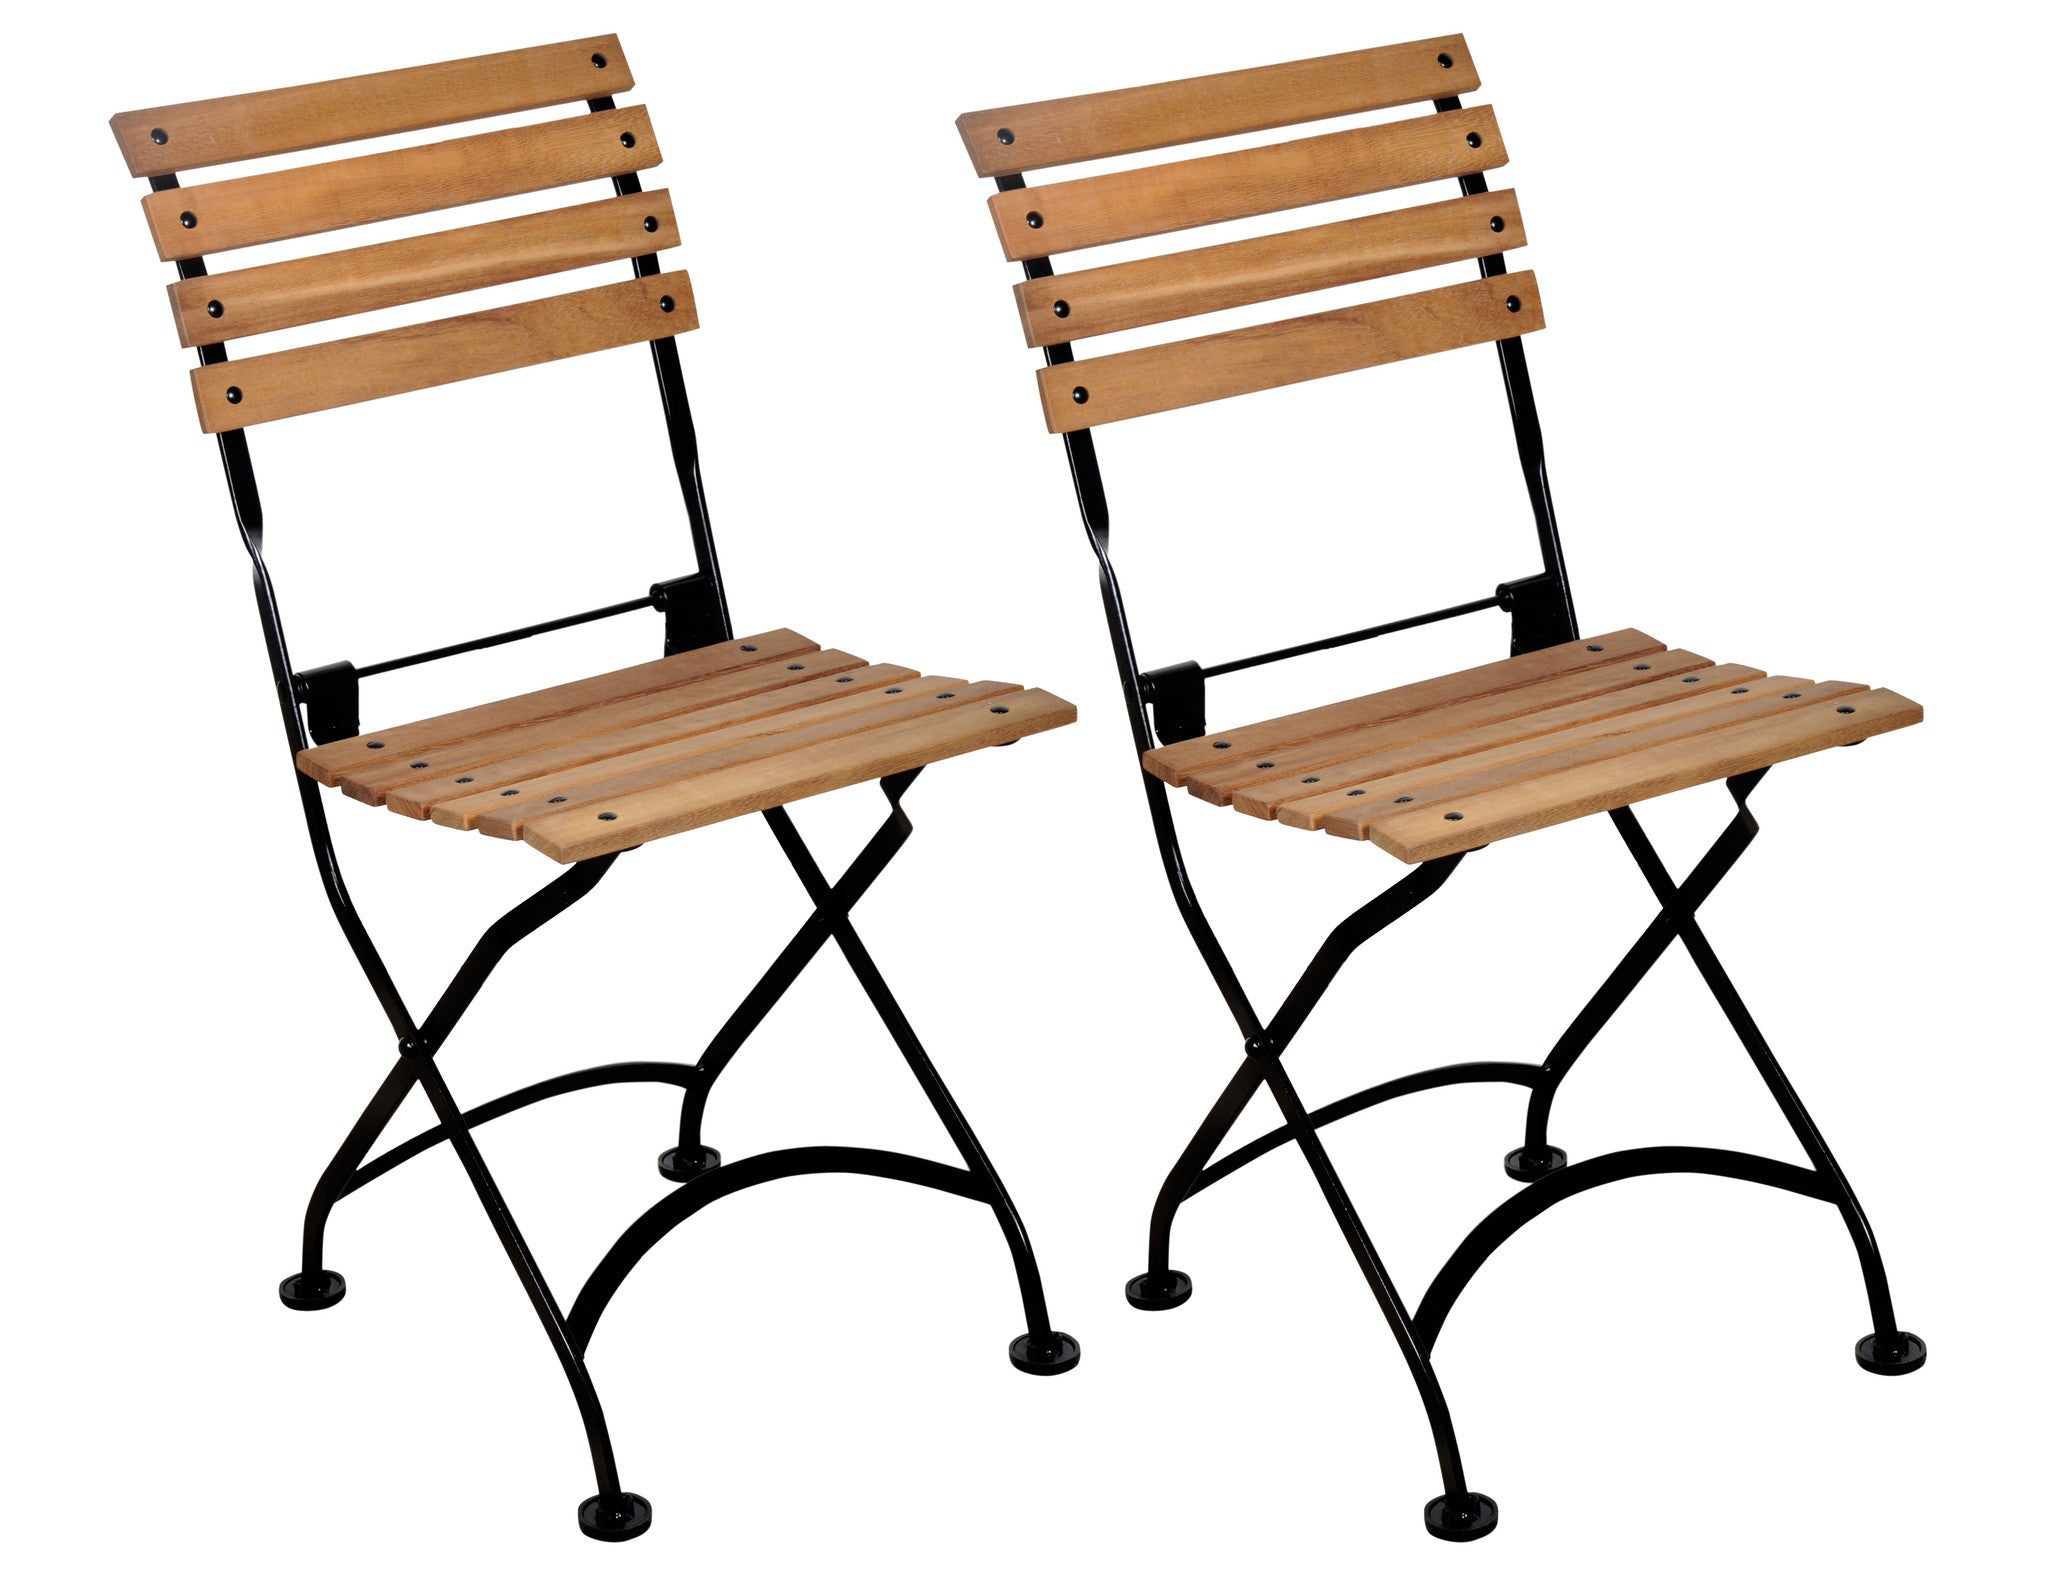 Charming ... French Bistro Chair Folding With Teak Wood Slats From EventsUber.com  (set Of 2 ...